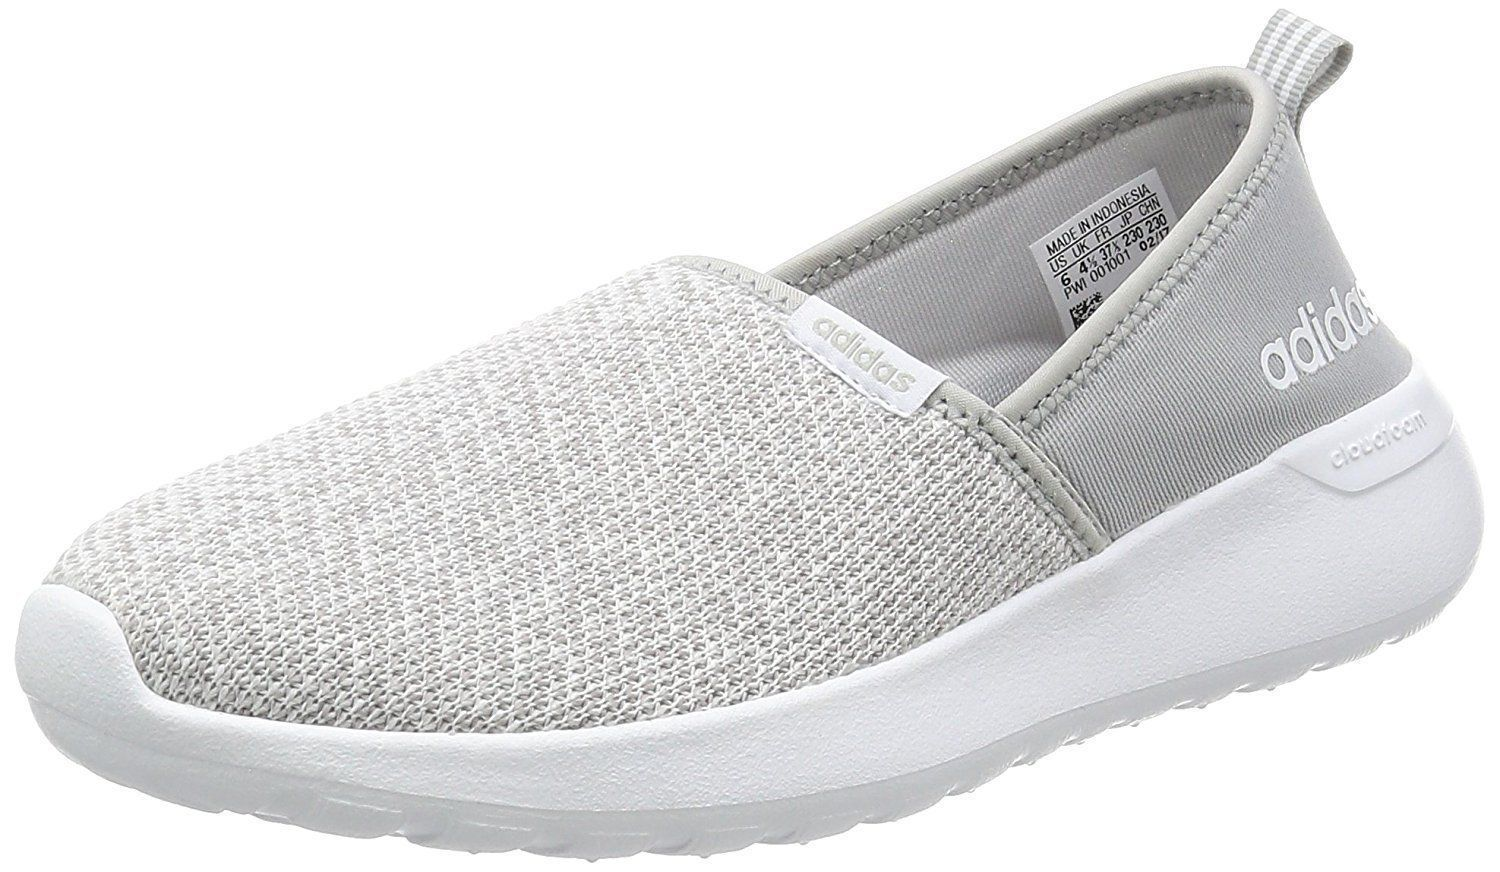 Adidas Neo Cloudfoam Lite Racer Slip-On and similar items. S l1600 6a846e268